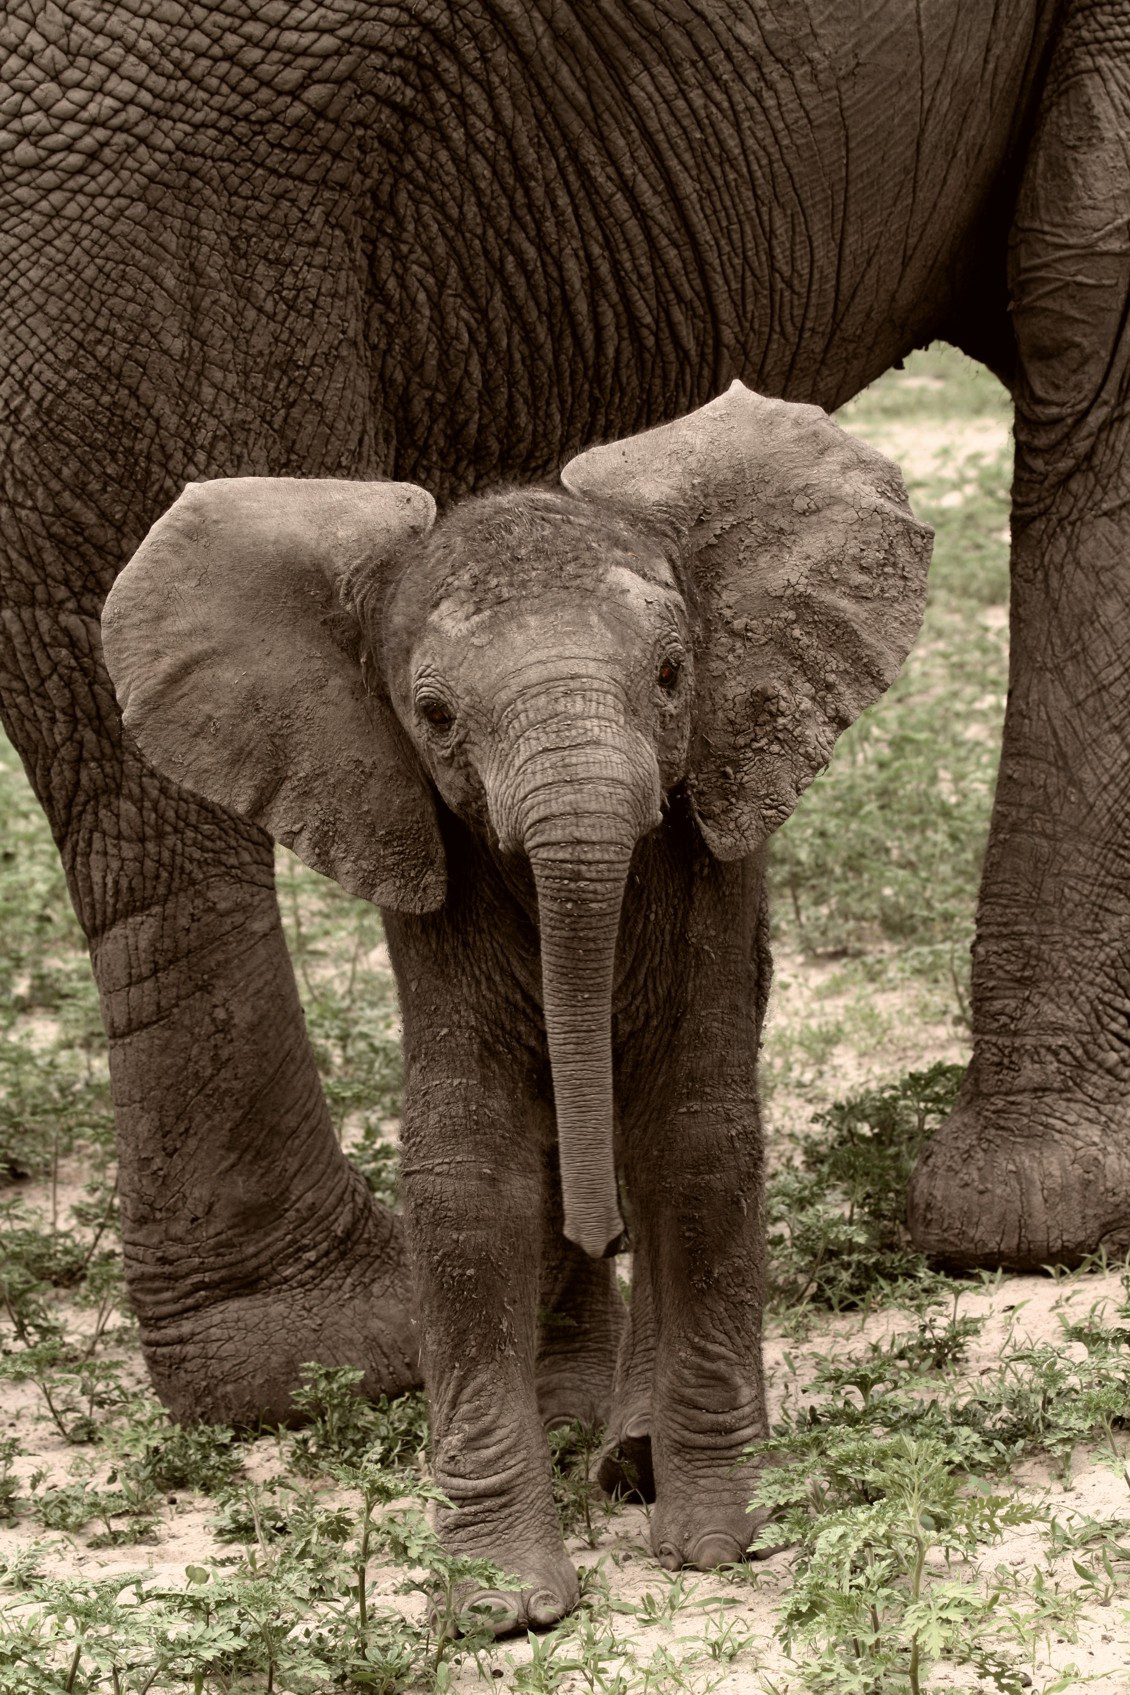 Baby Elephant Ears Out Conservation Action Trust Africa Geographic